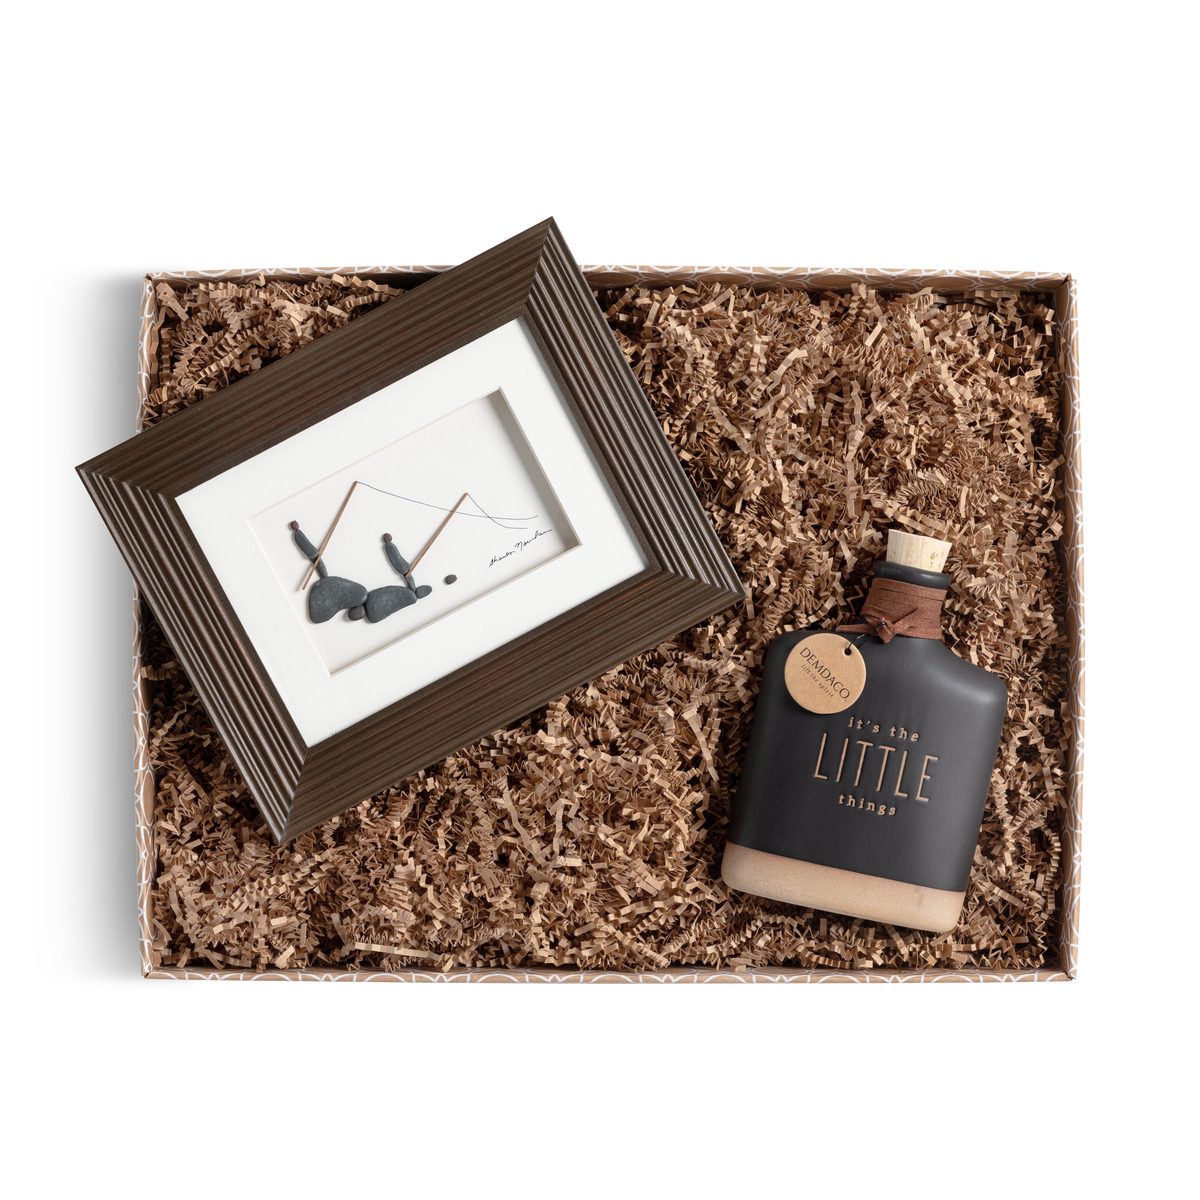 time well spent gift box that includes flask and framed pebble art of father and son fishing